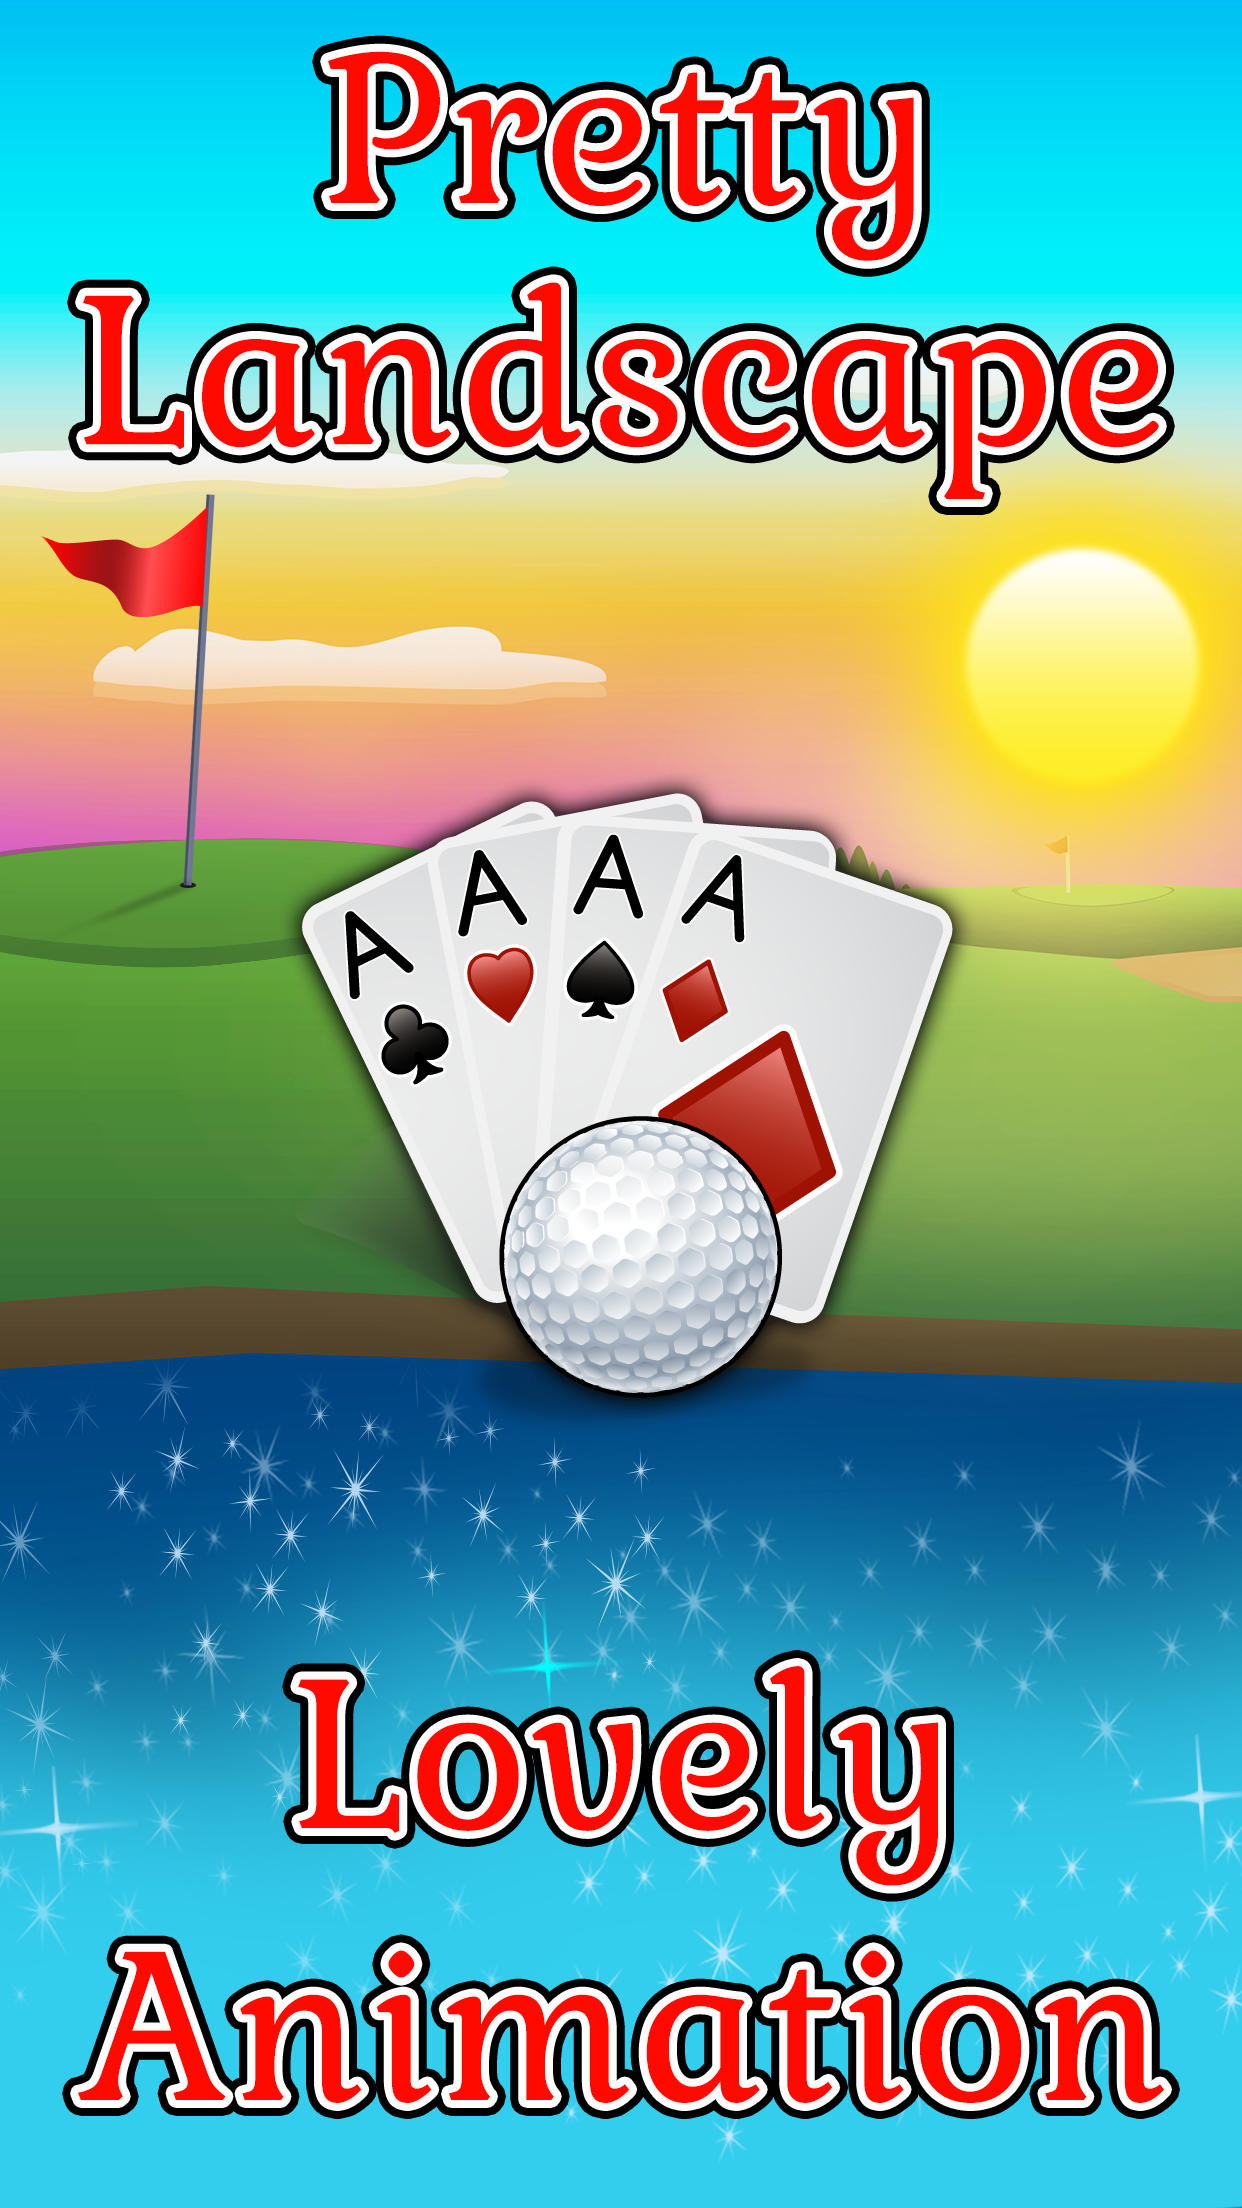 Love golf or the outdoors? Then you'll love Golf Solitaire